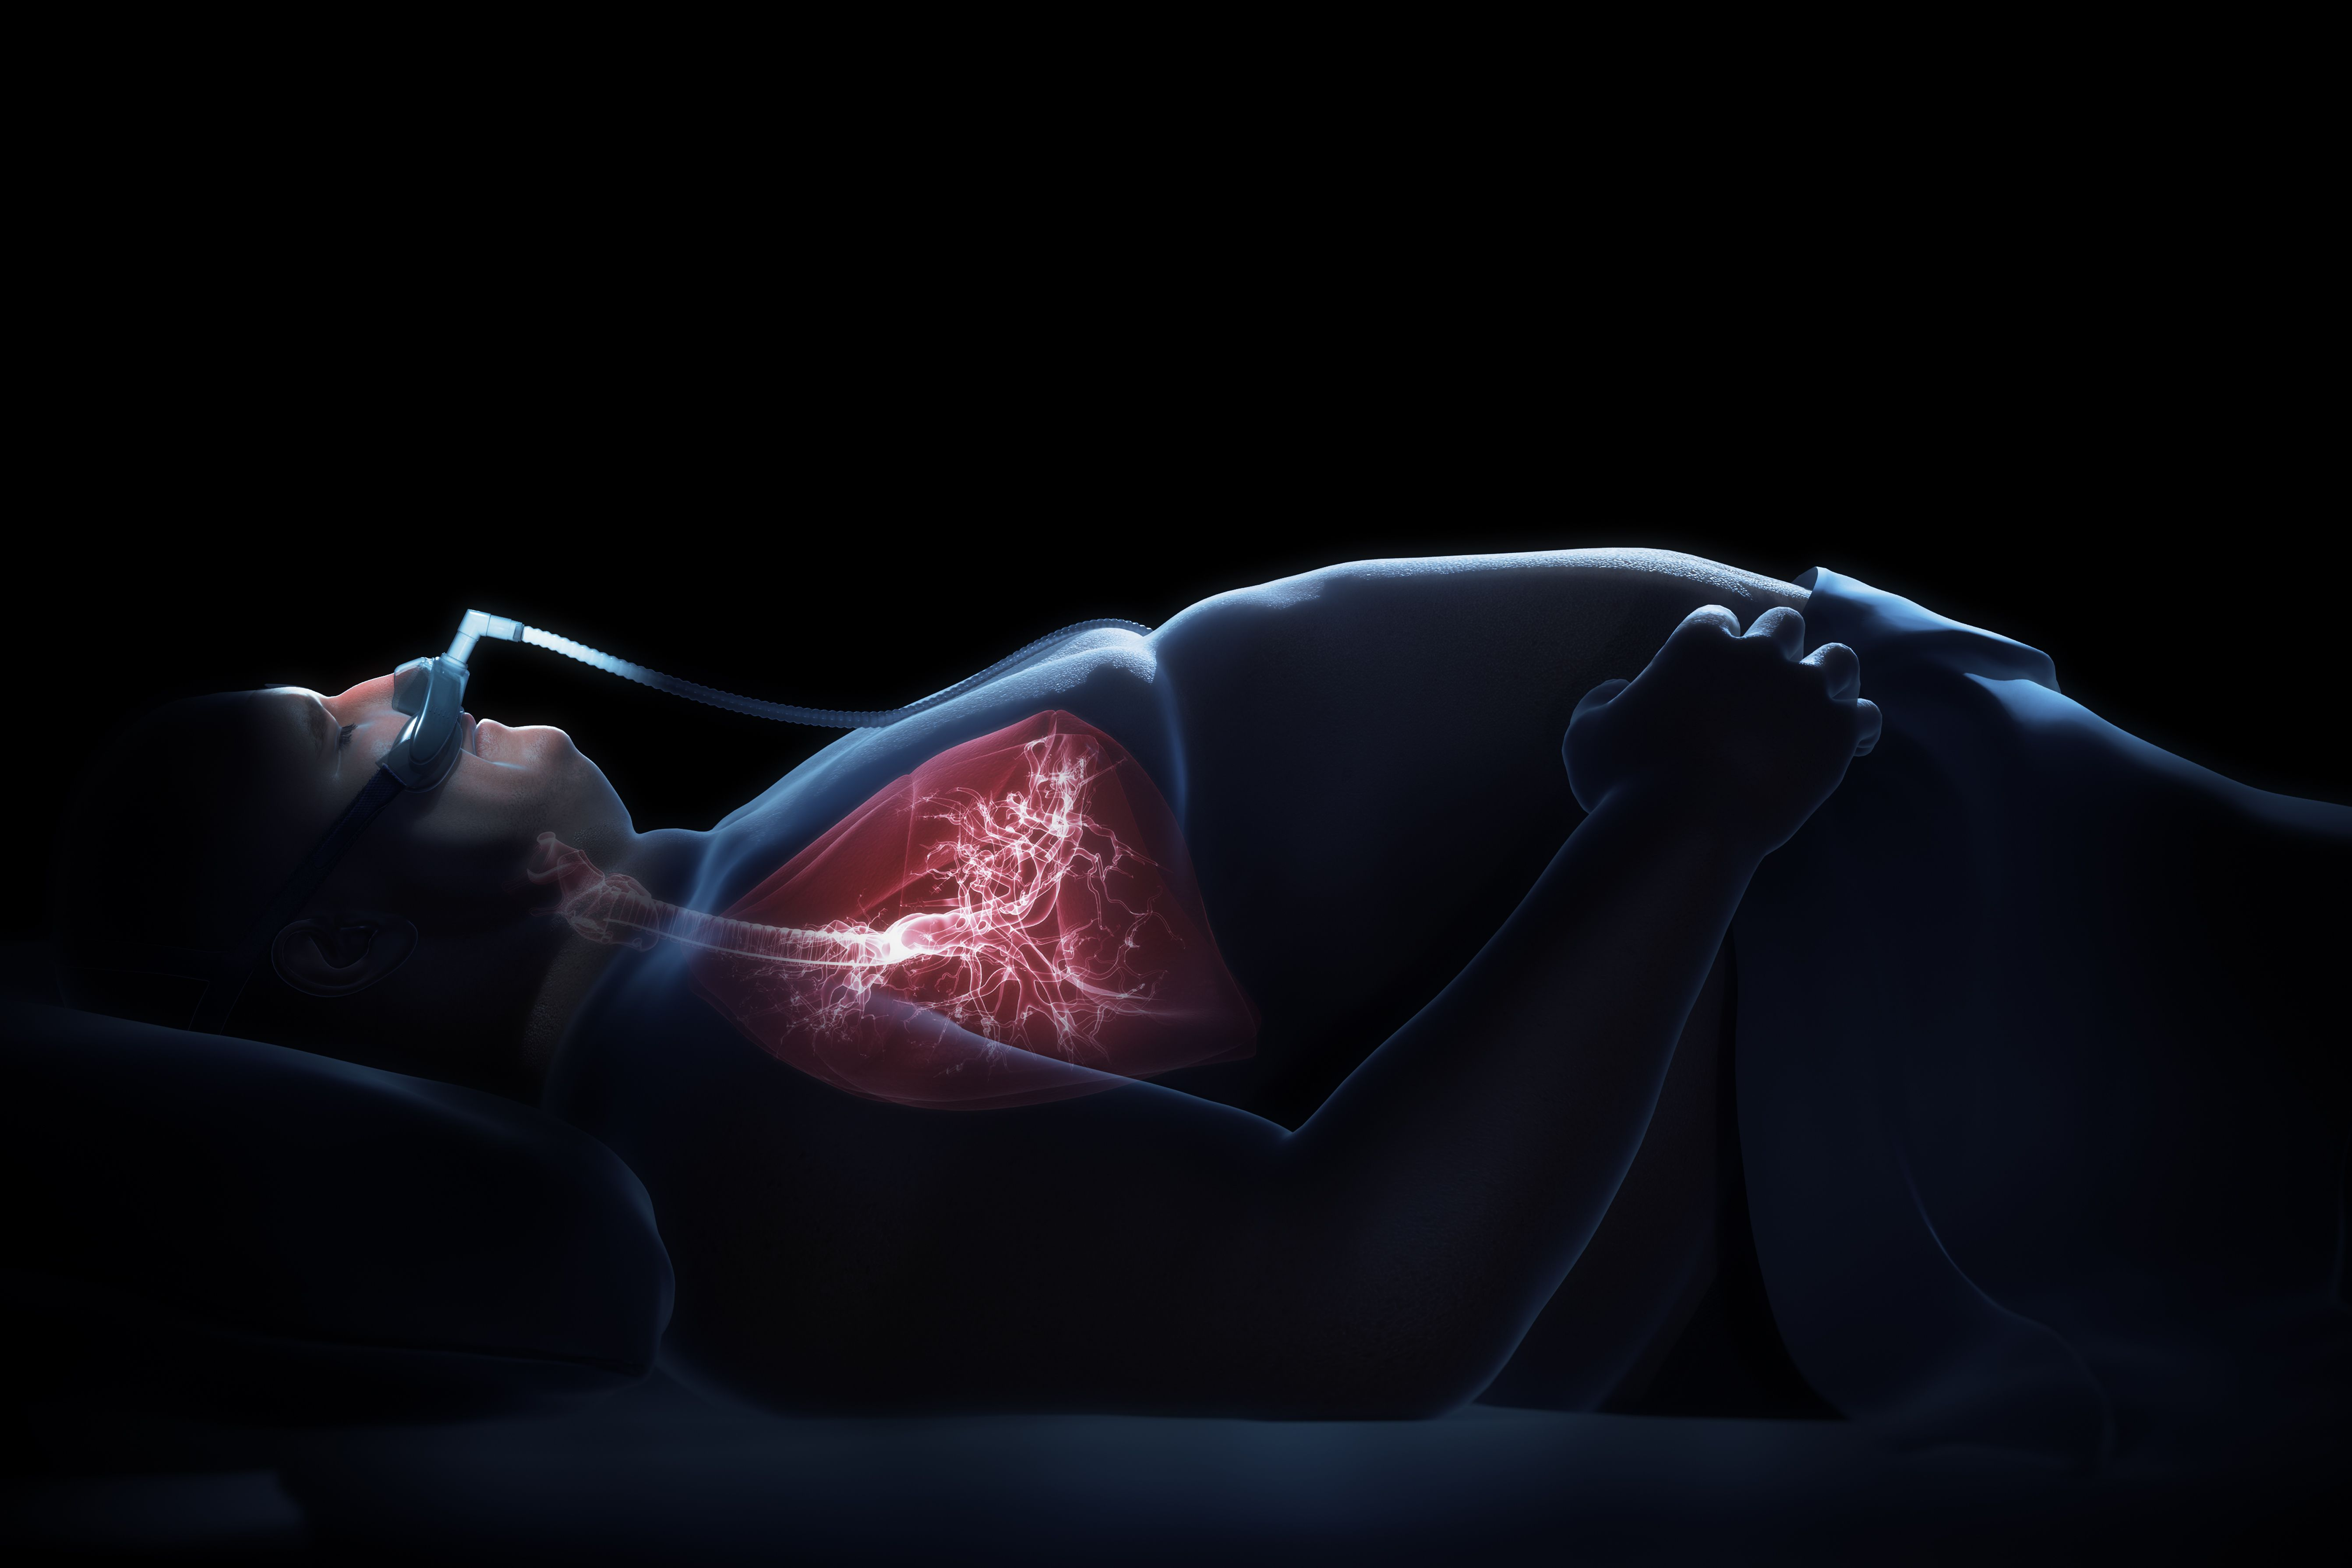 3D graphic of a sleeping man with cpap mask on in bed